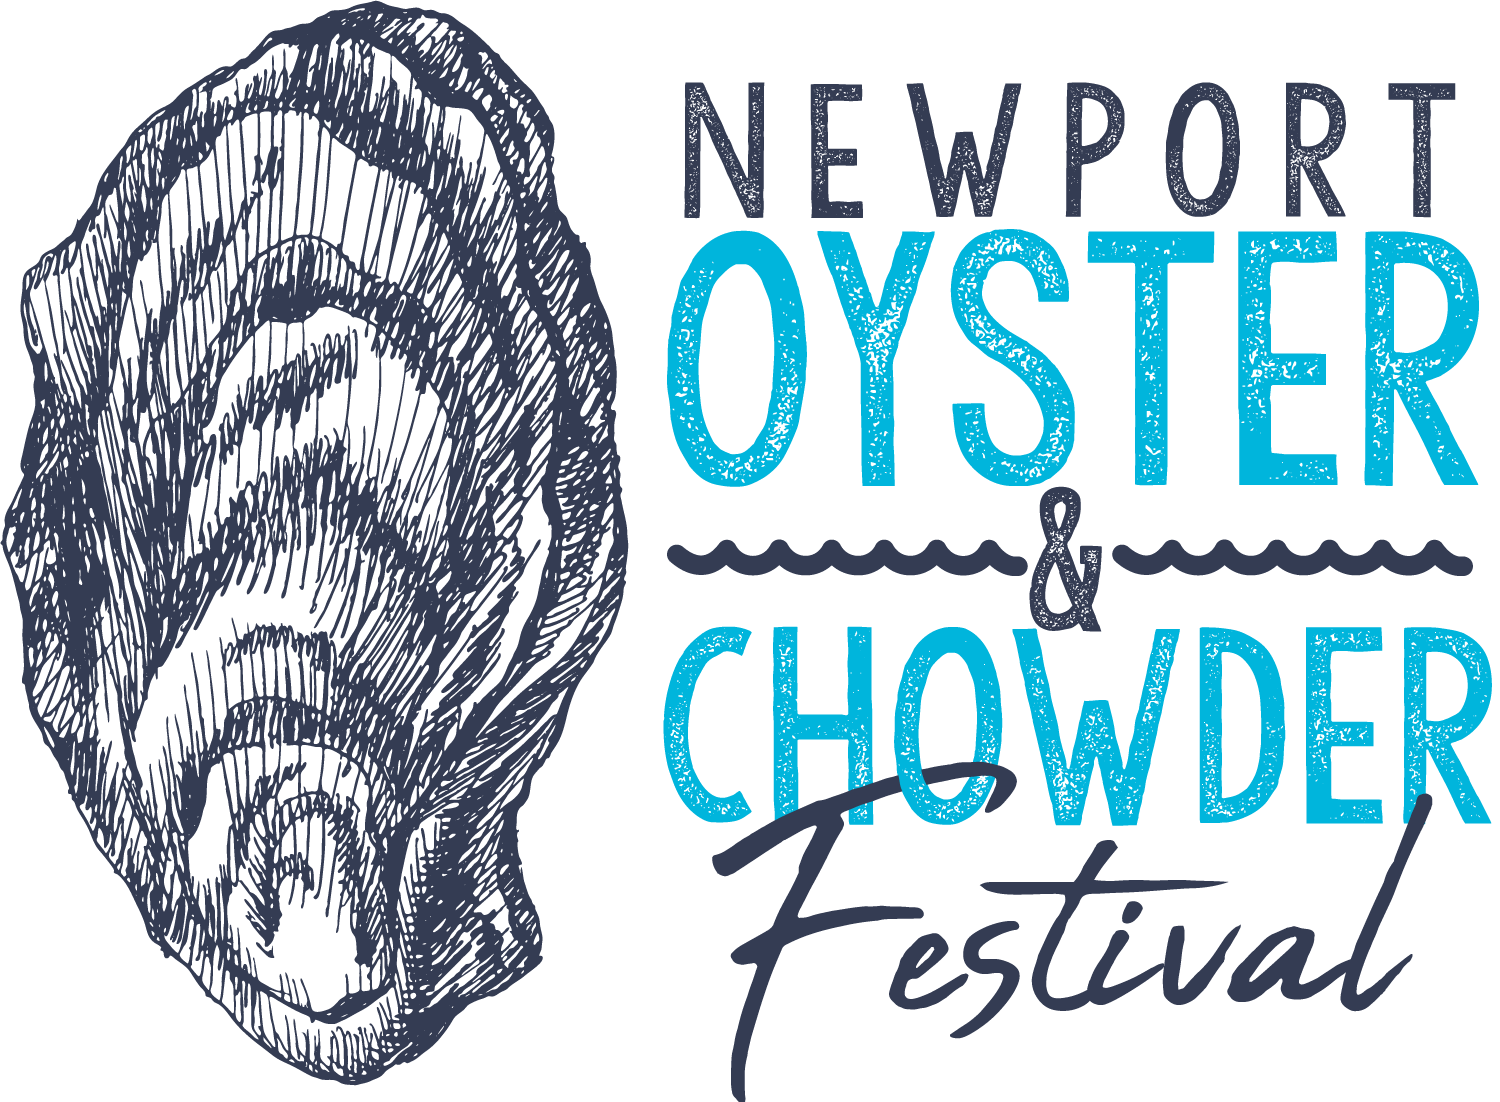 The Newport Oyster & Chowder Festival Returns to Bowen's Wharf to Kick off the Summer Season